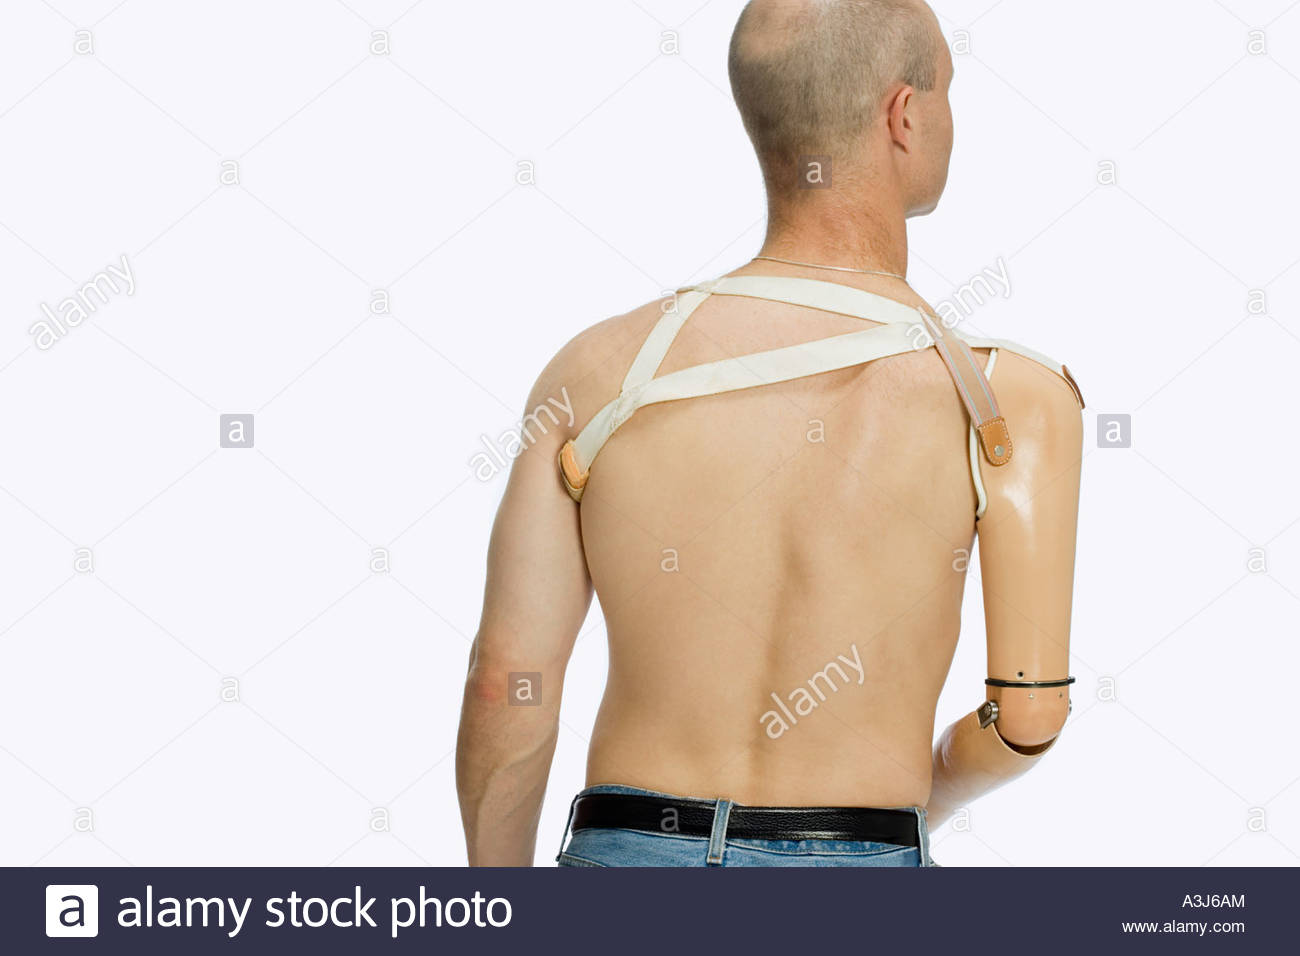 Rear view of a man with an artificial limb - Stock Image